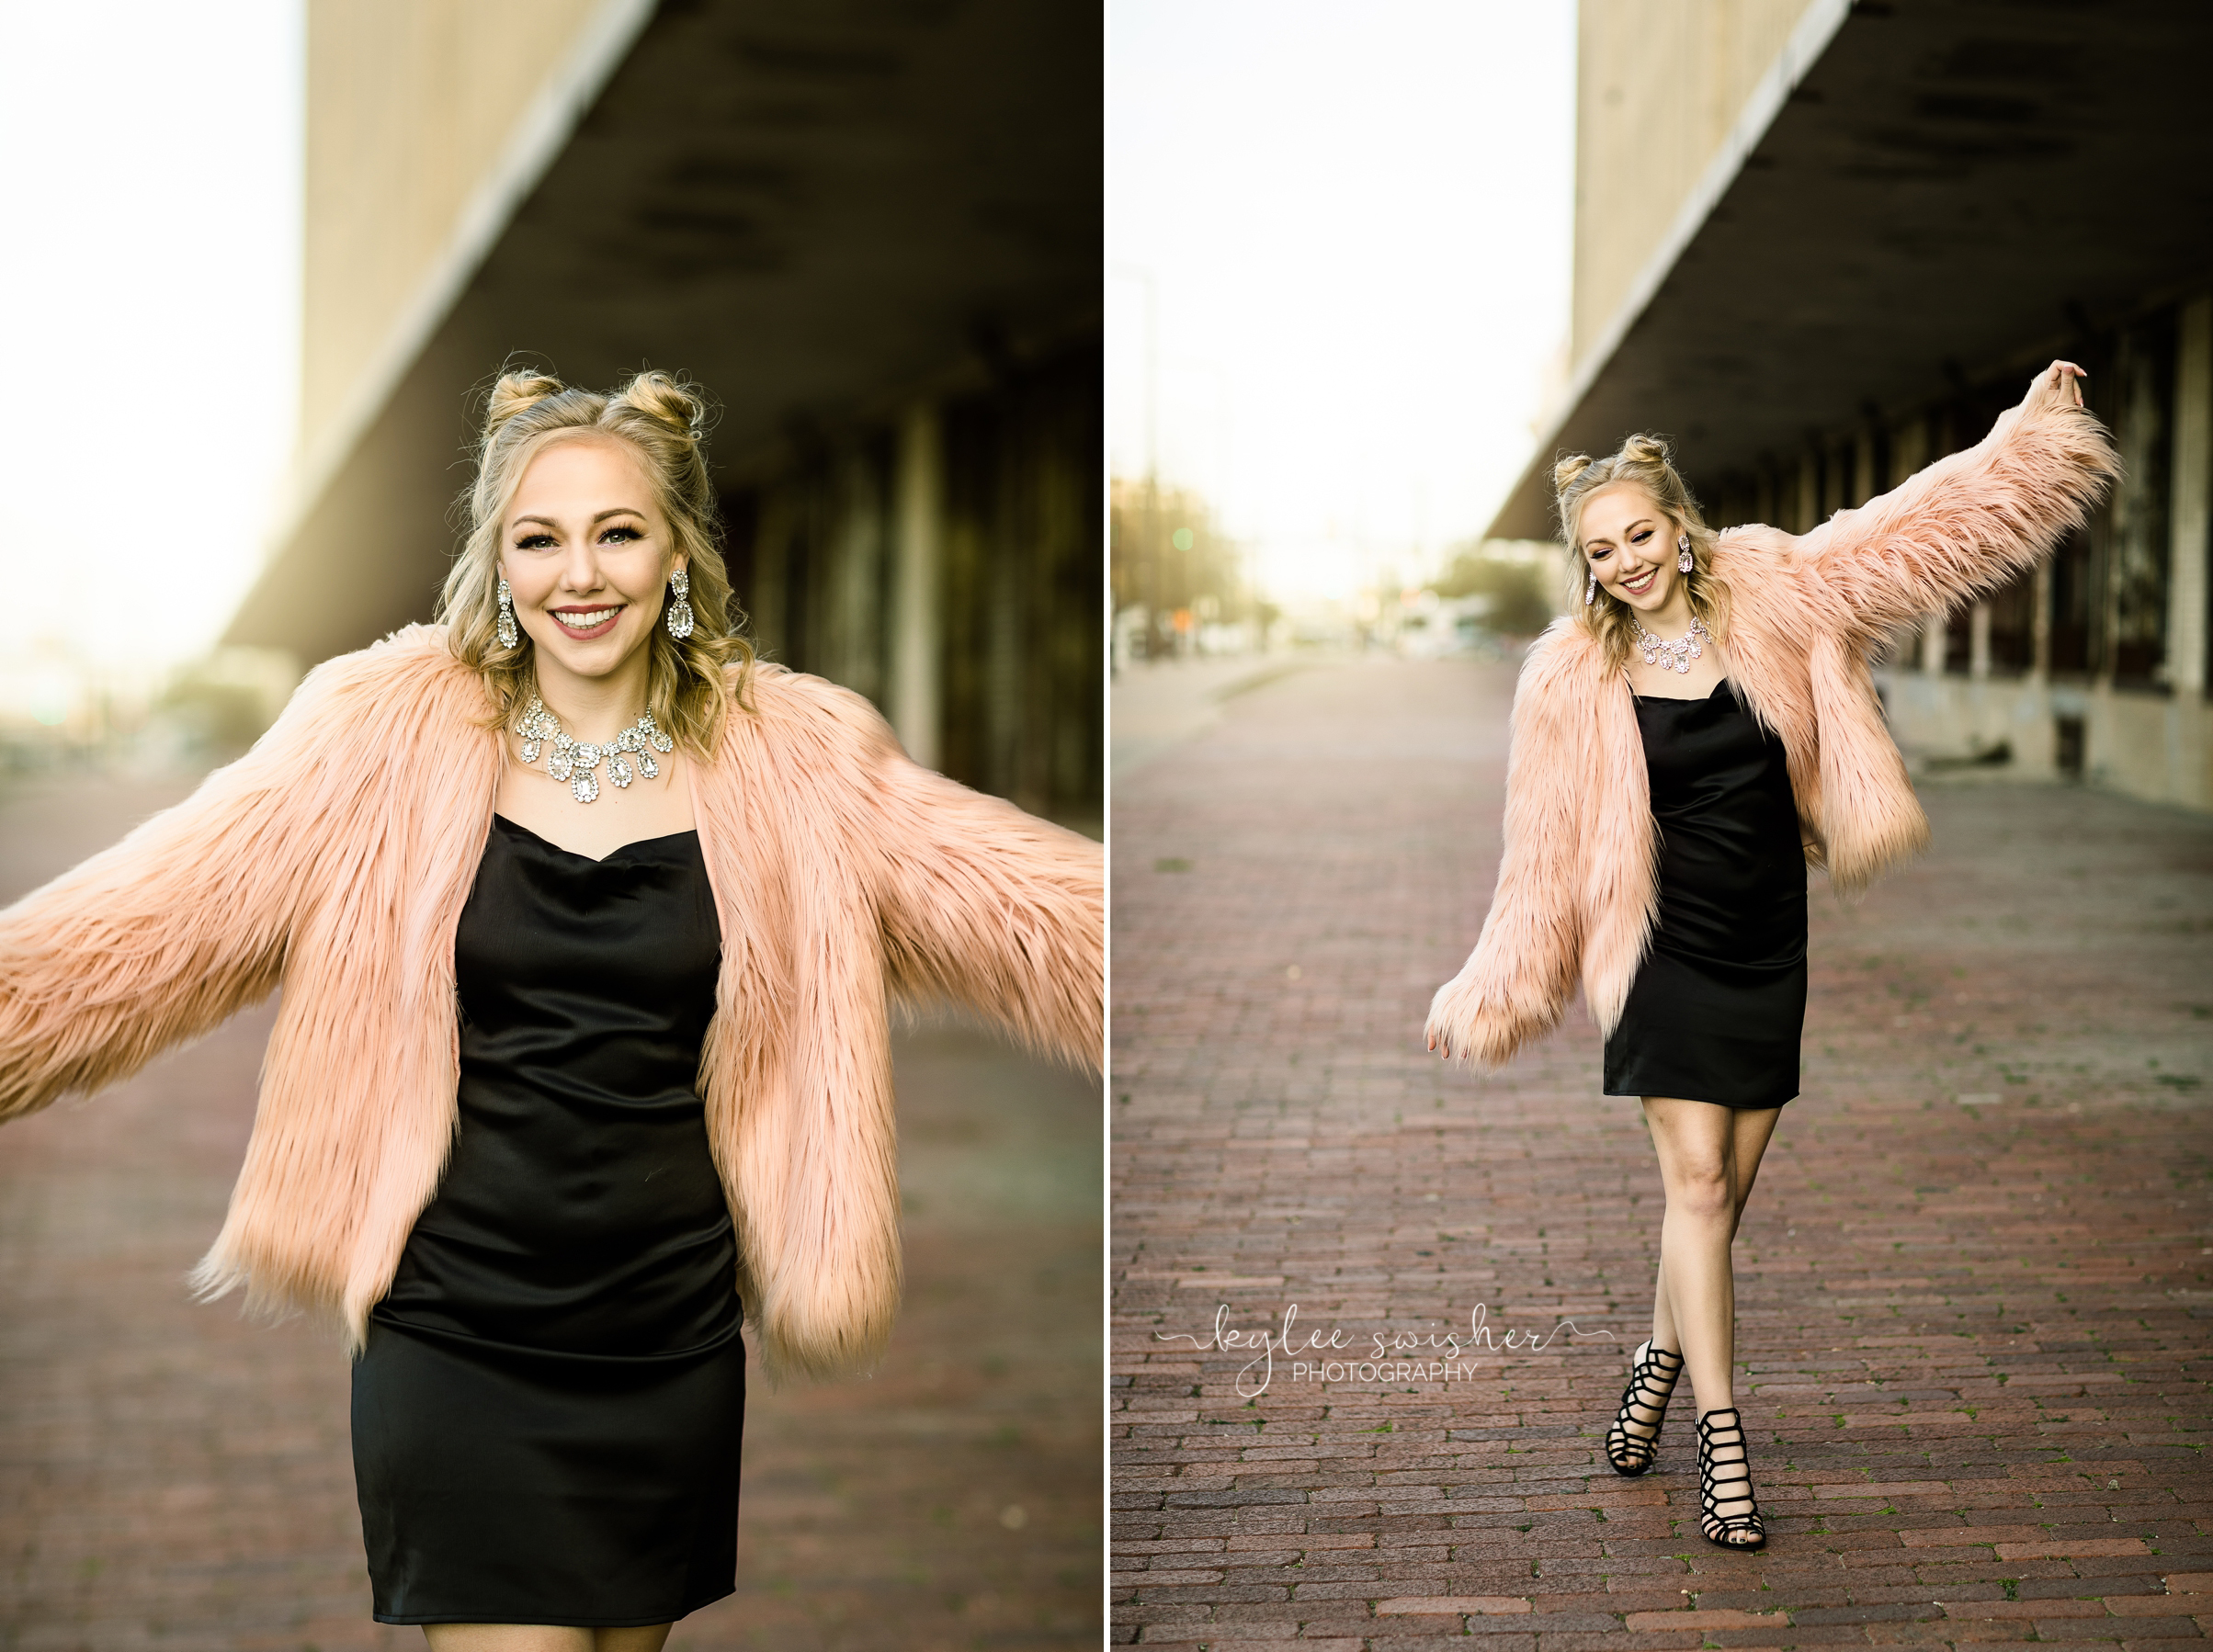 DFW-Fort-Worth-Senior-Photographer-Texas-Portraits-High-School-Photography-Pictures